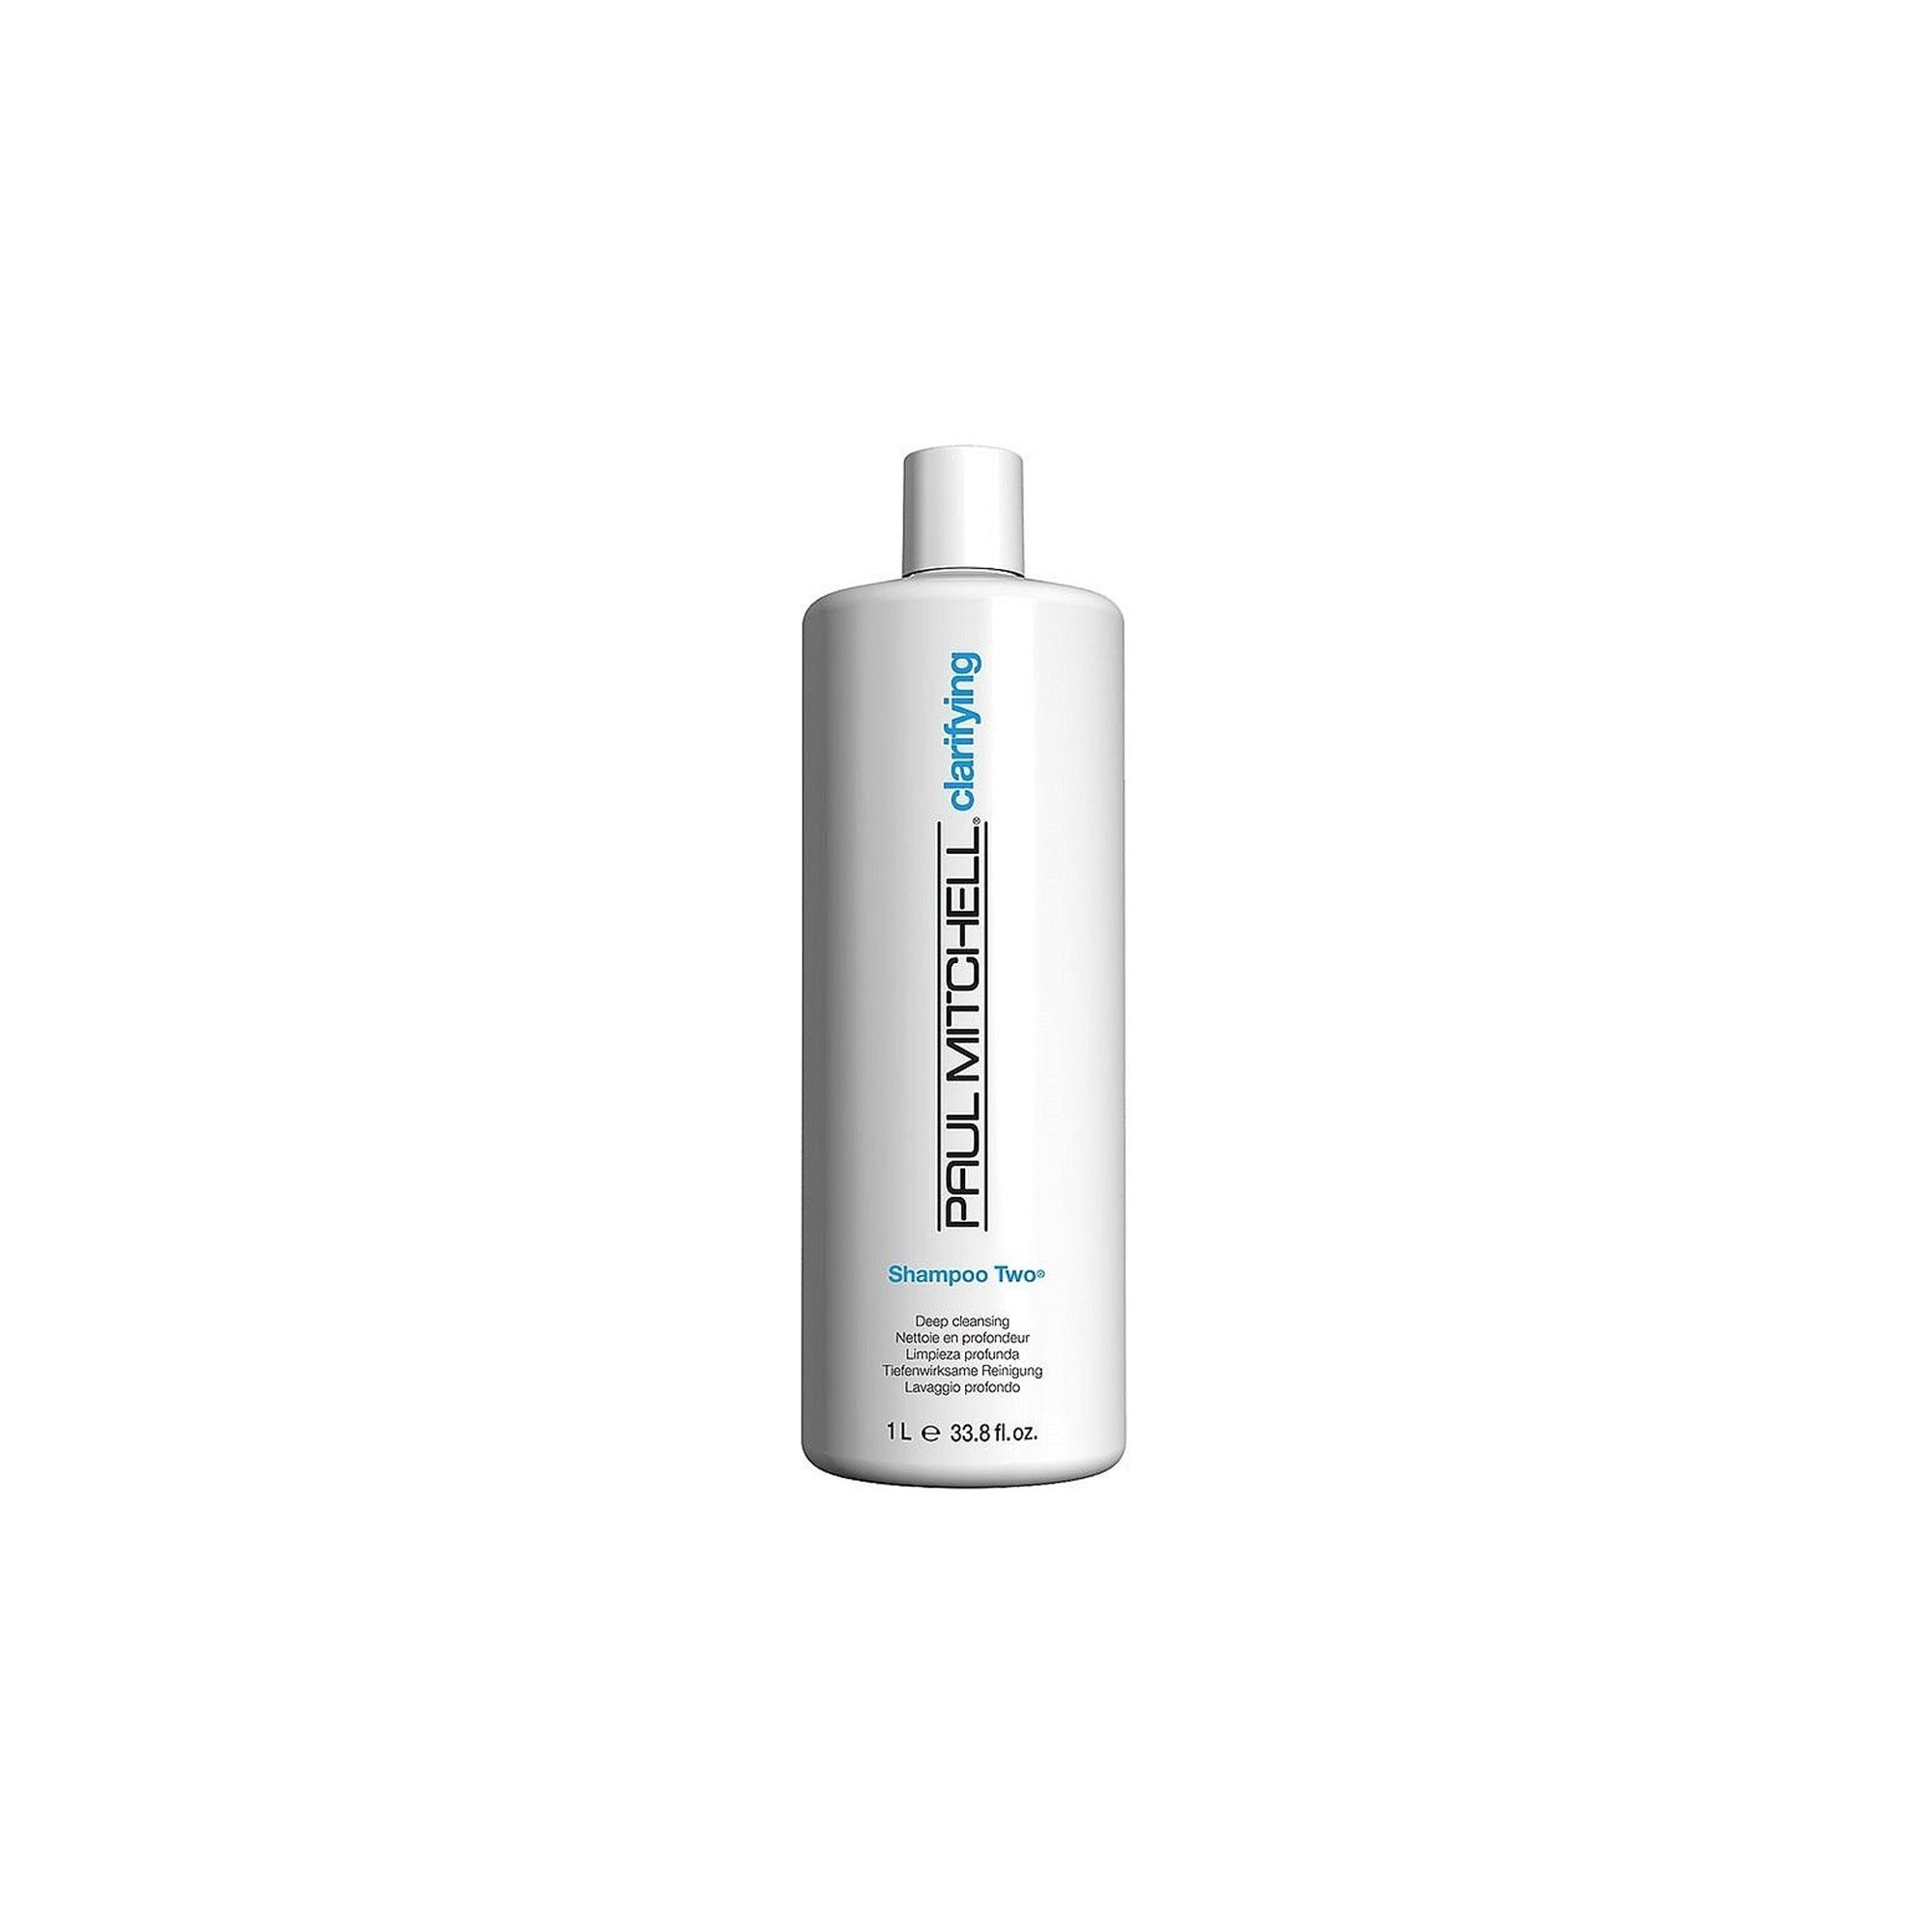 Paul Mitchell Shampoo Two 1L